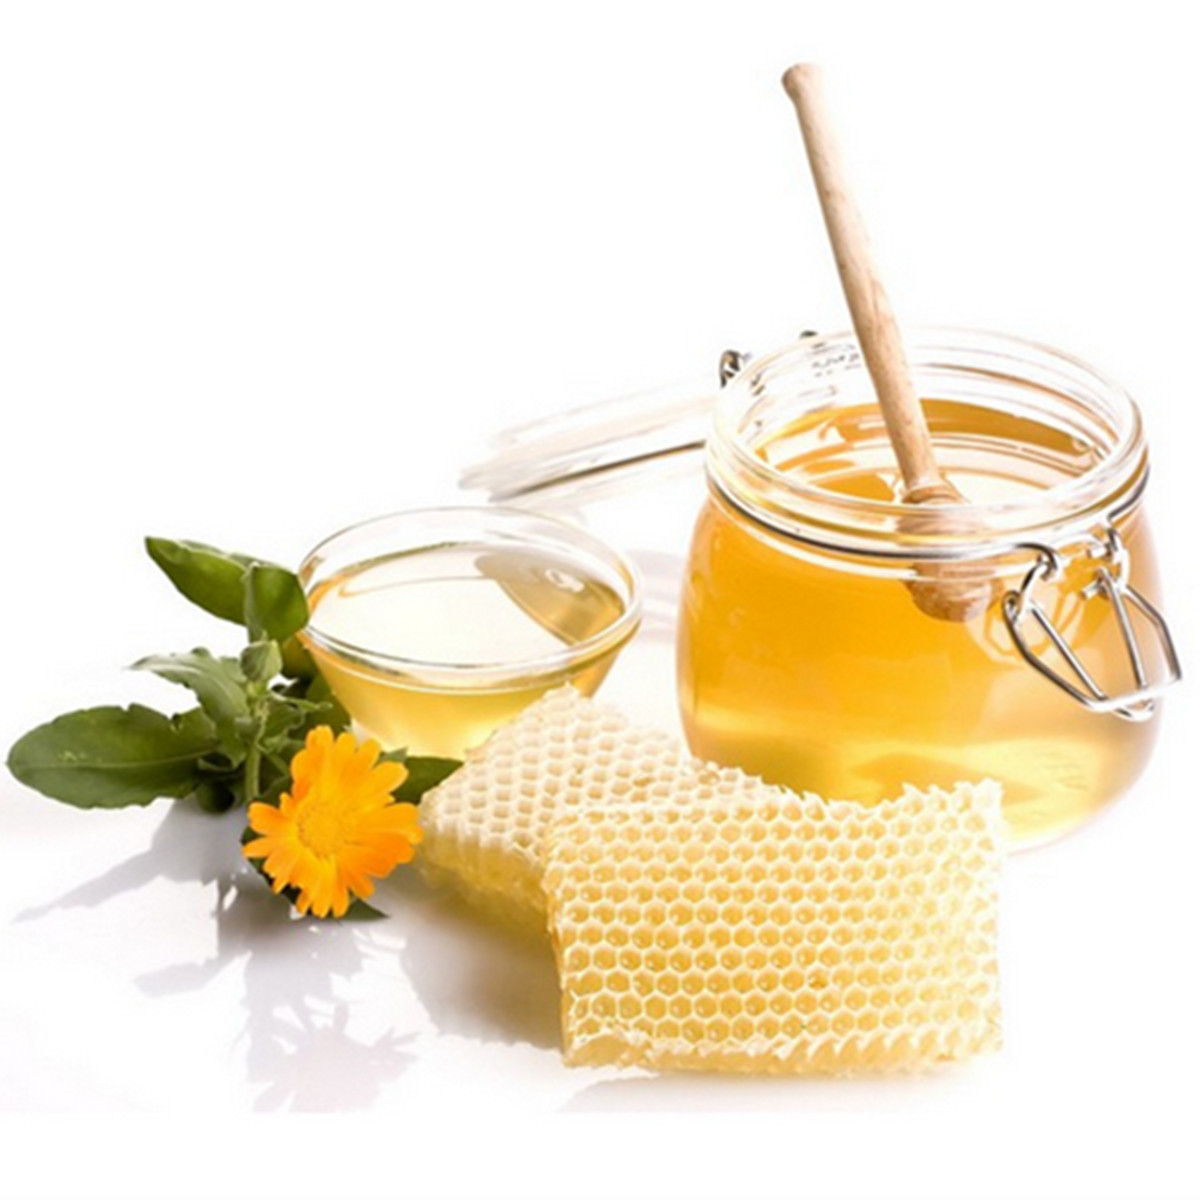 The benefits of honey